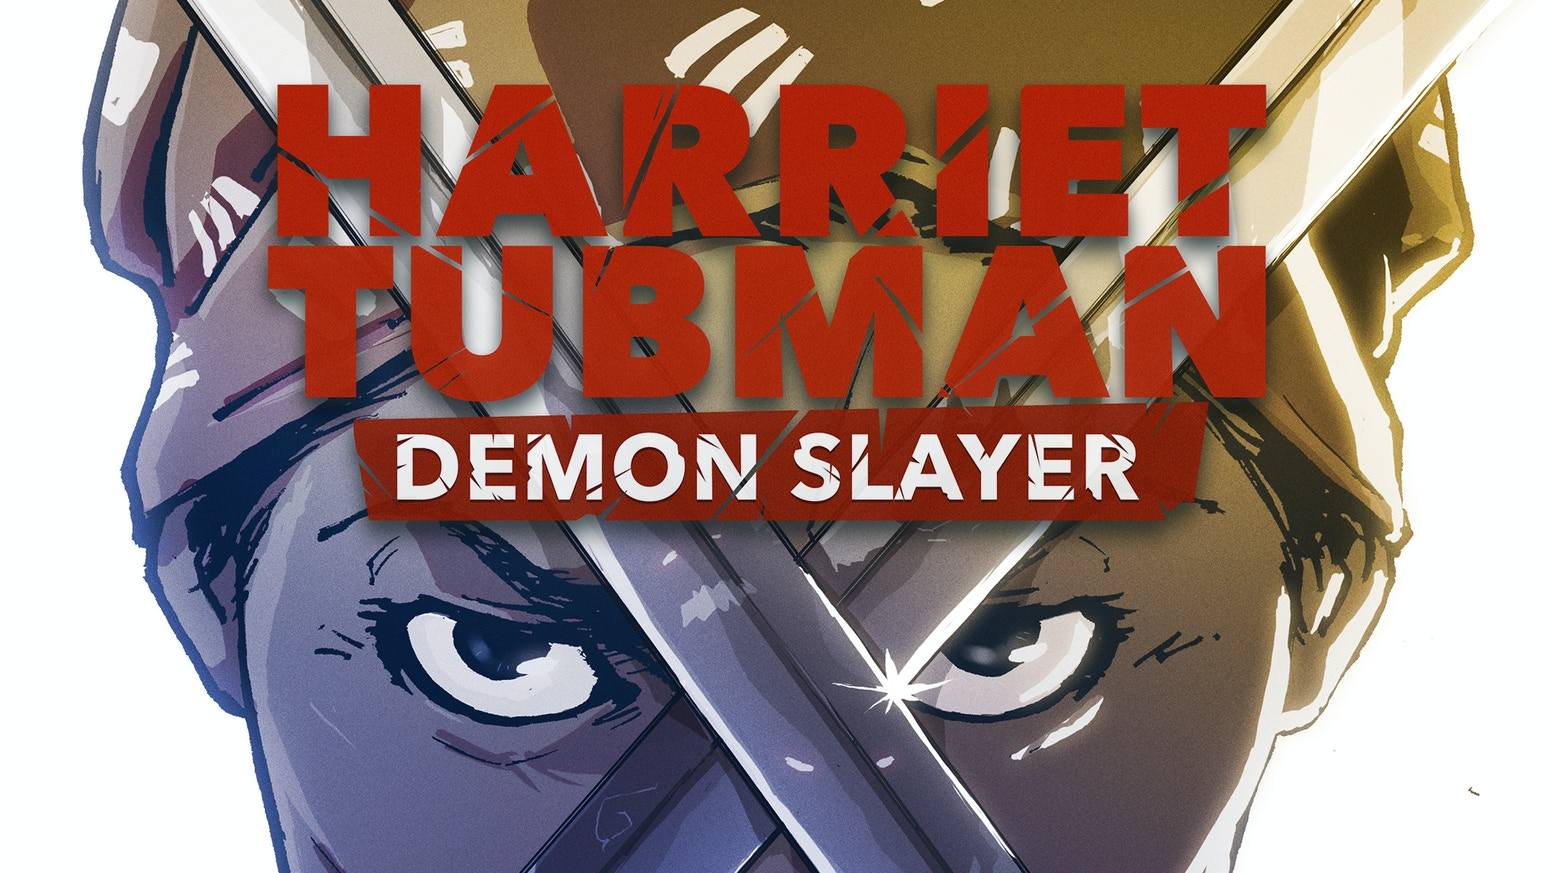 A graphic novel blending supernatural action with the true life of  Harriet Tubman